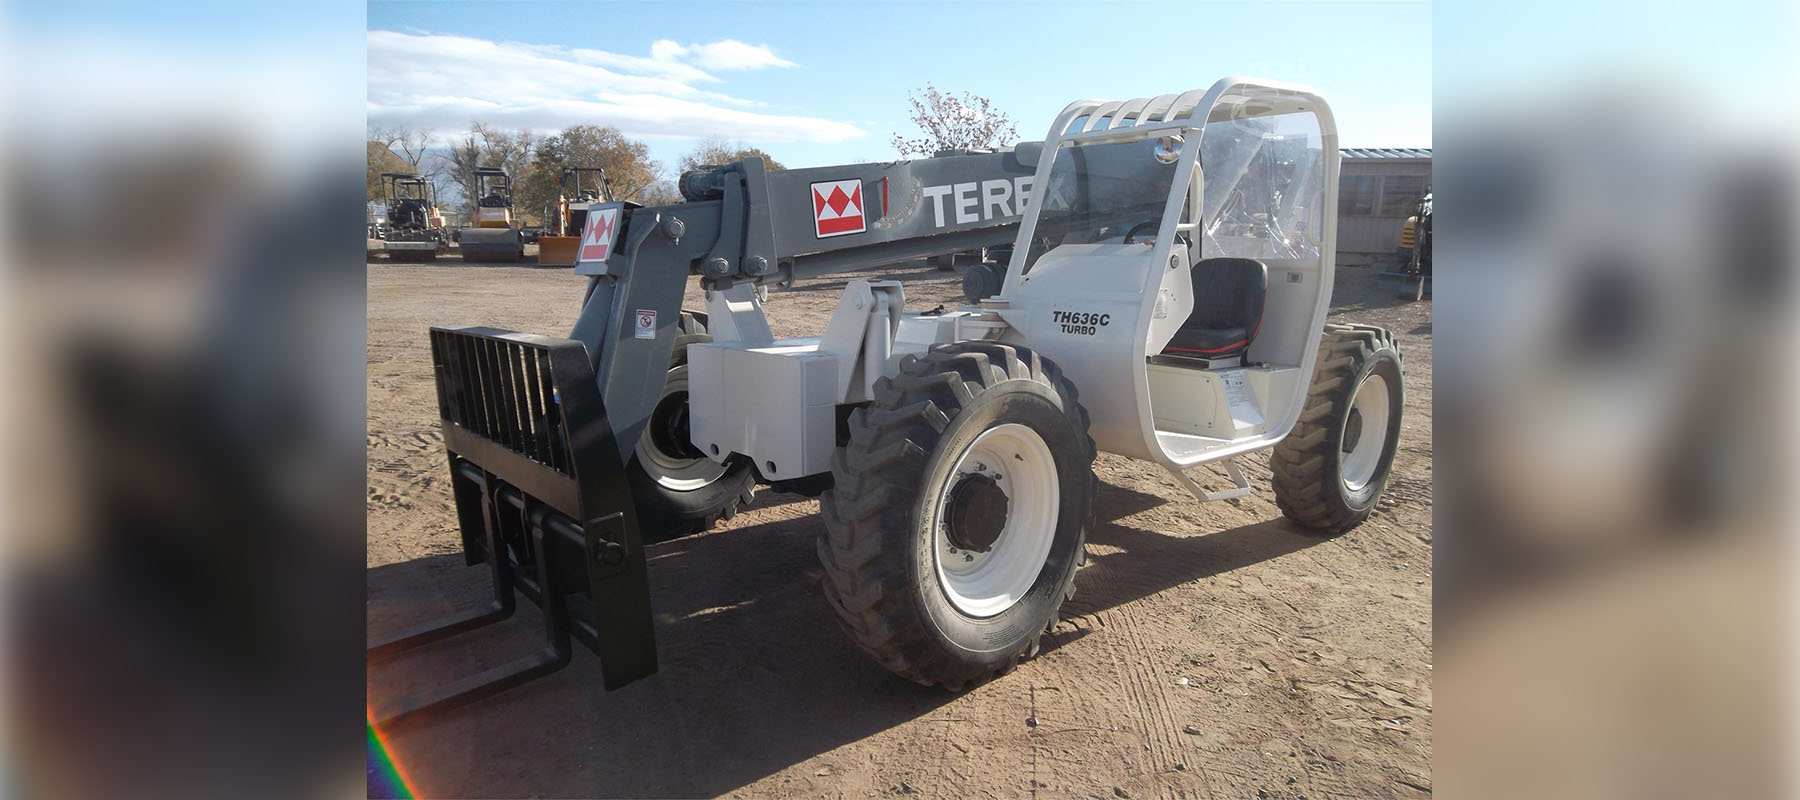 Terex Telescopic Forklift from Inventory